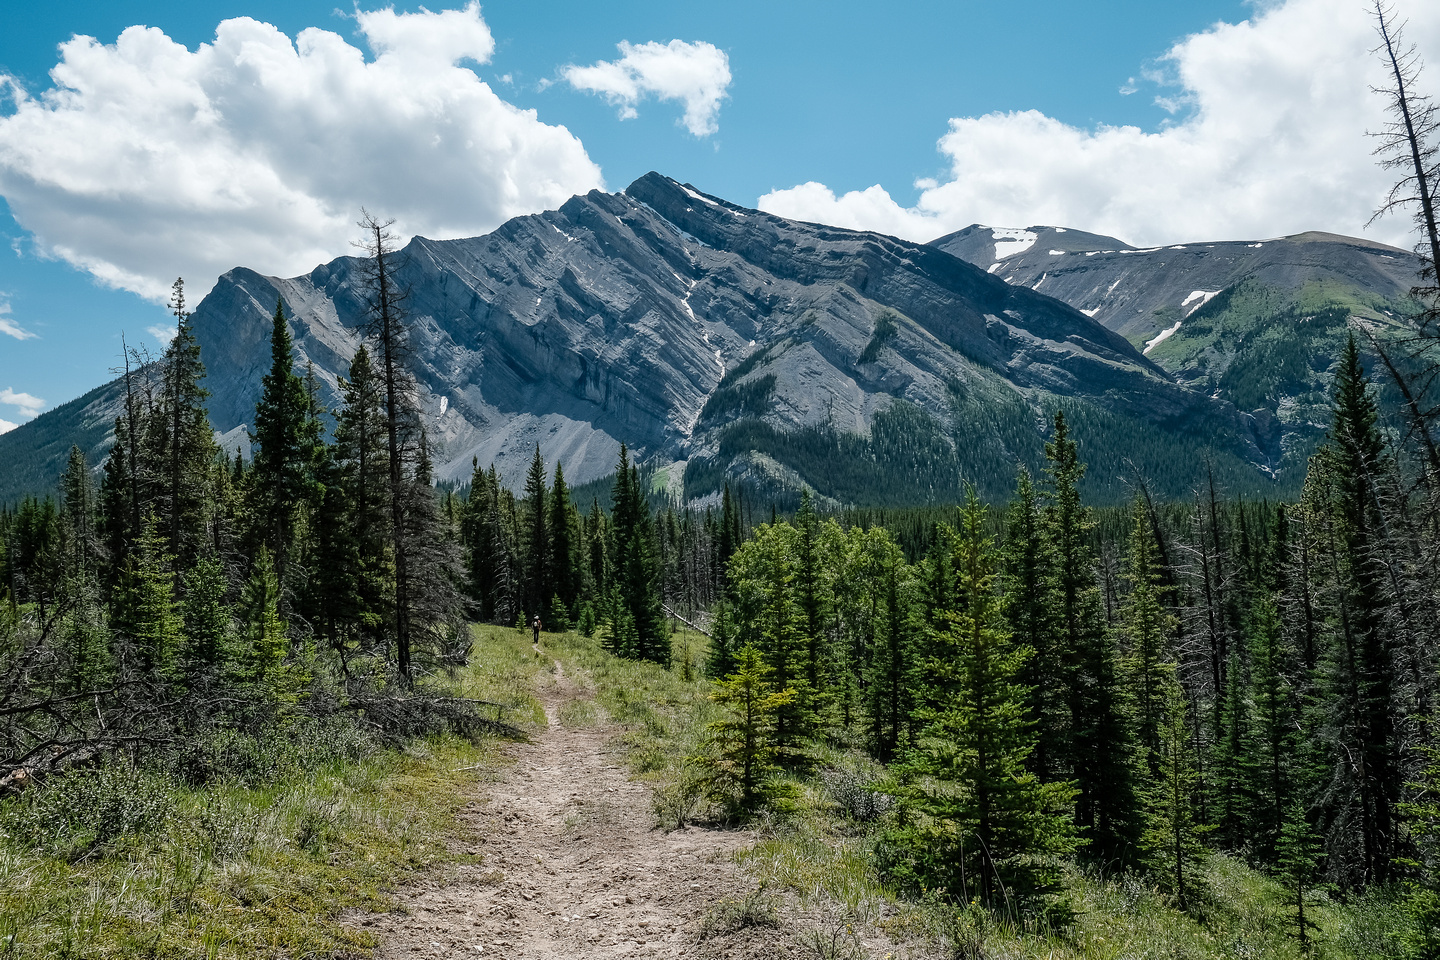 Hiking back along the Red Deer River nearing the Cascade fire road junction and Mount White.